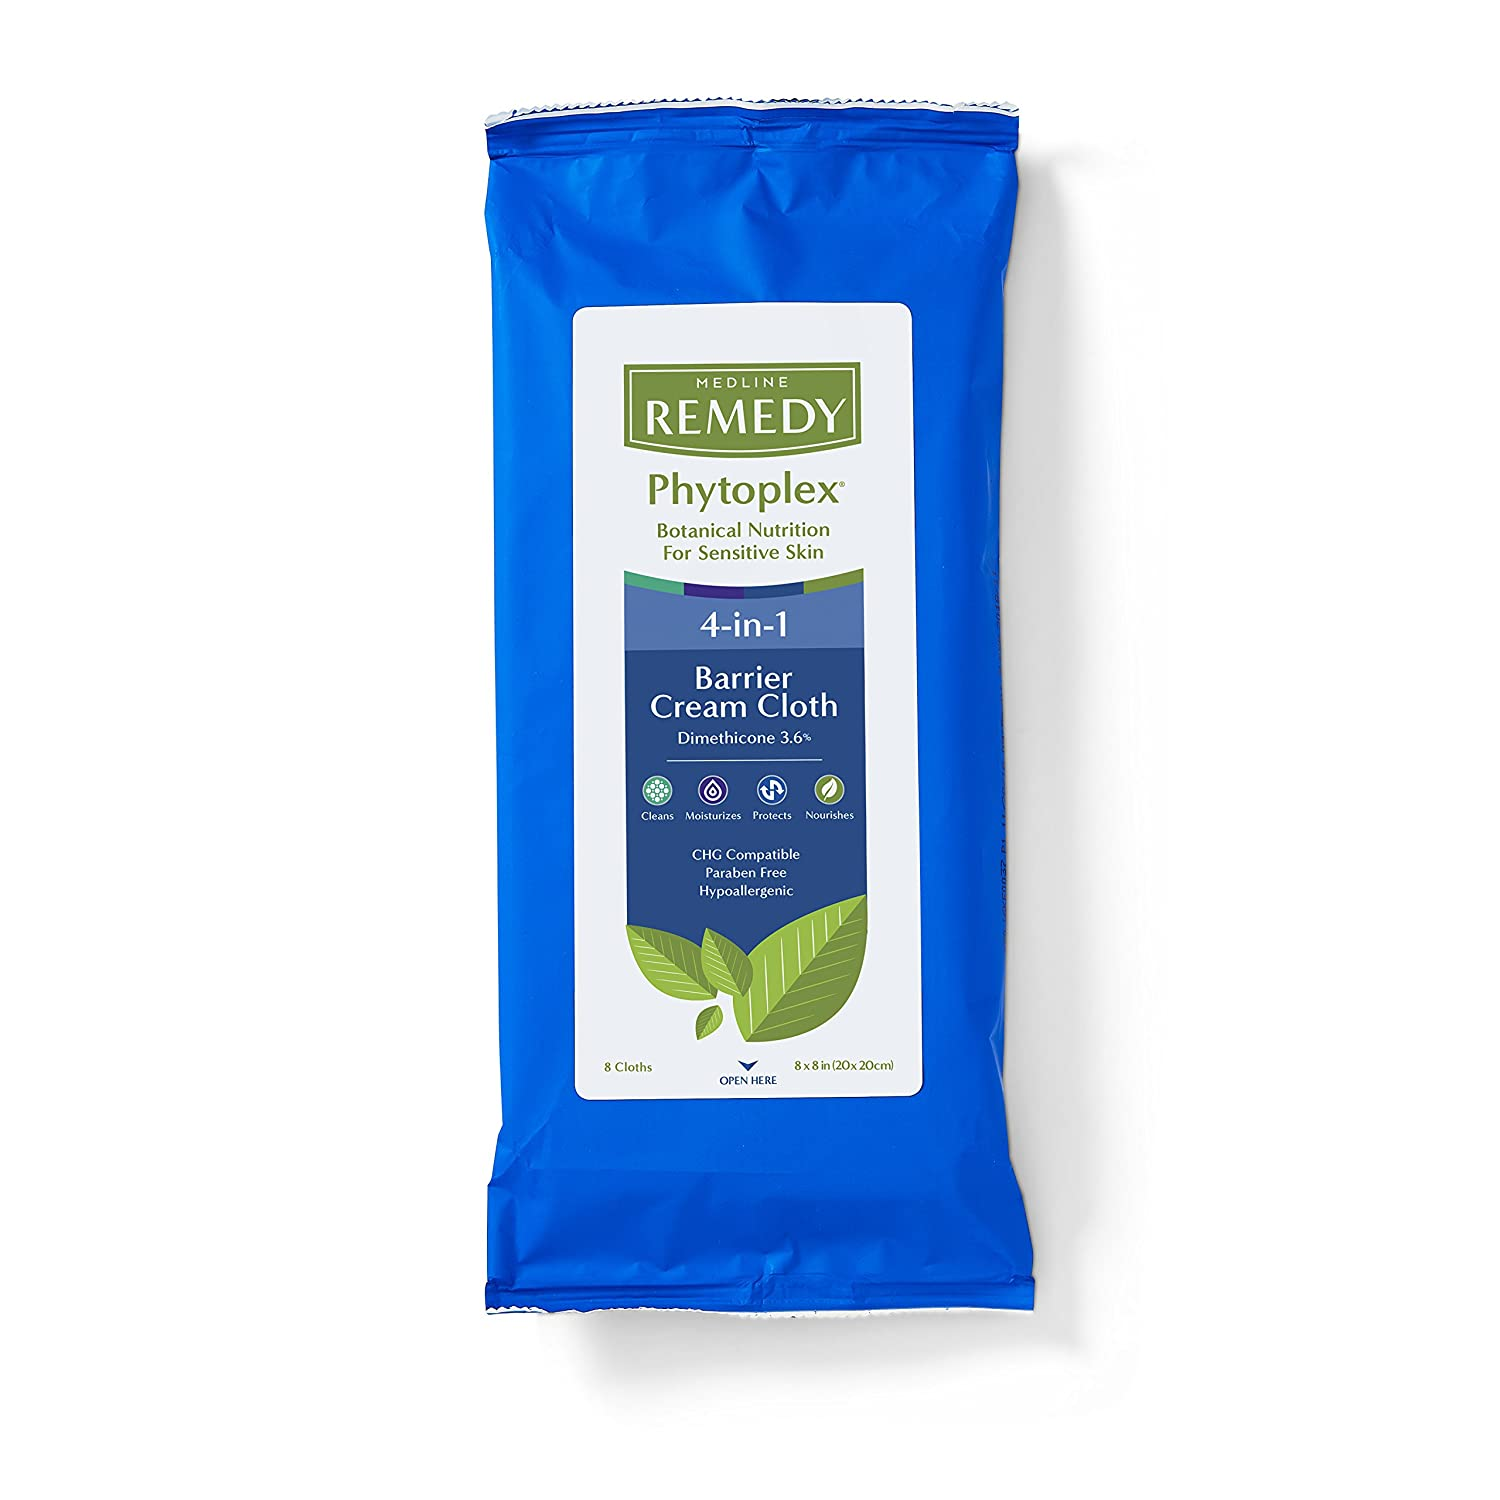 Medline MSC092508 Remedy Phytoplex 4-in-1 Barrier Cream Cloths with Dimethicone (Pack of 256)